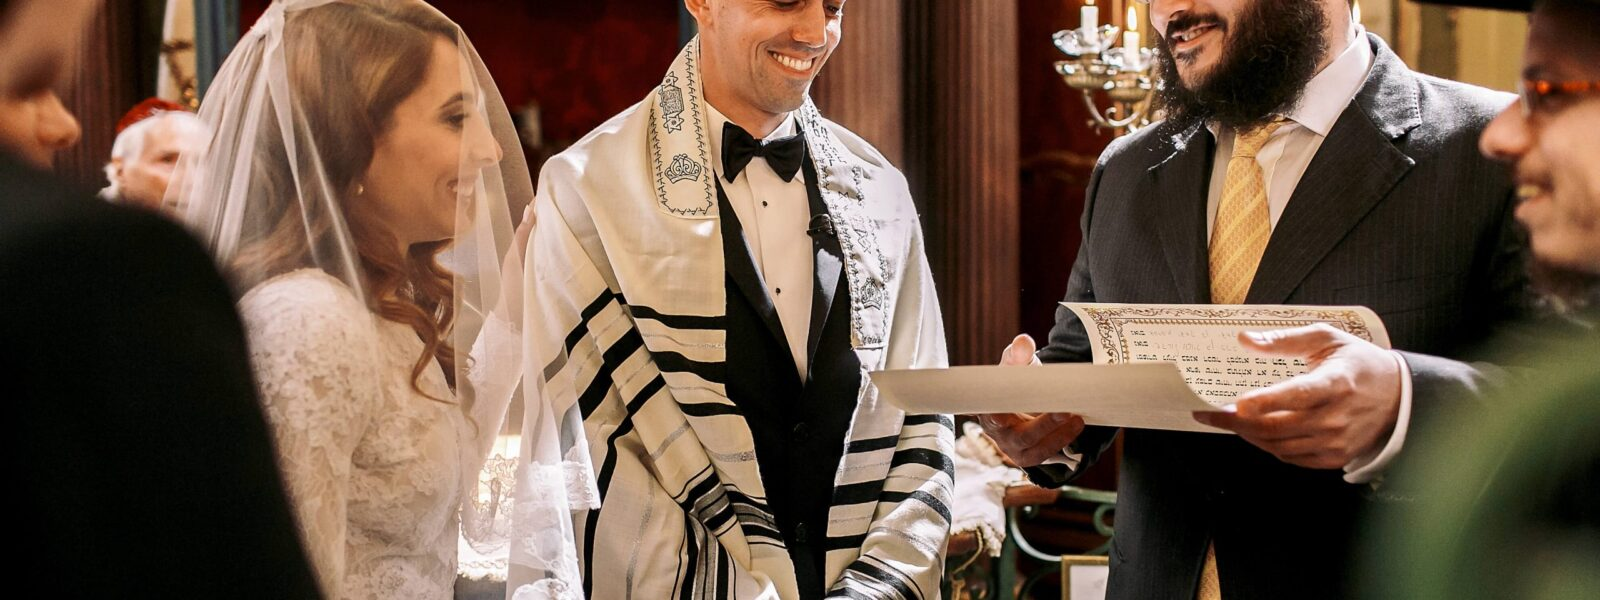 Rabbi Silverman Announces Trends to Anticipate for 2021 Weddings